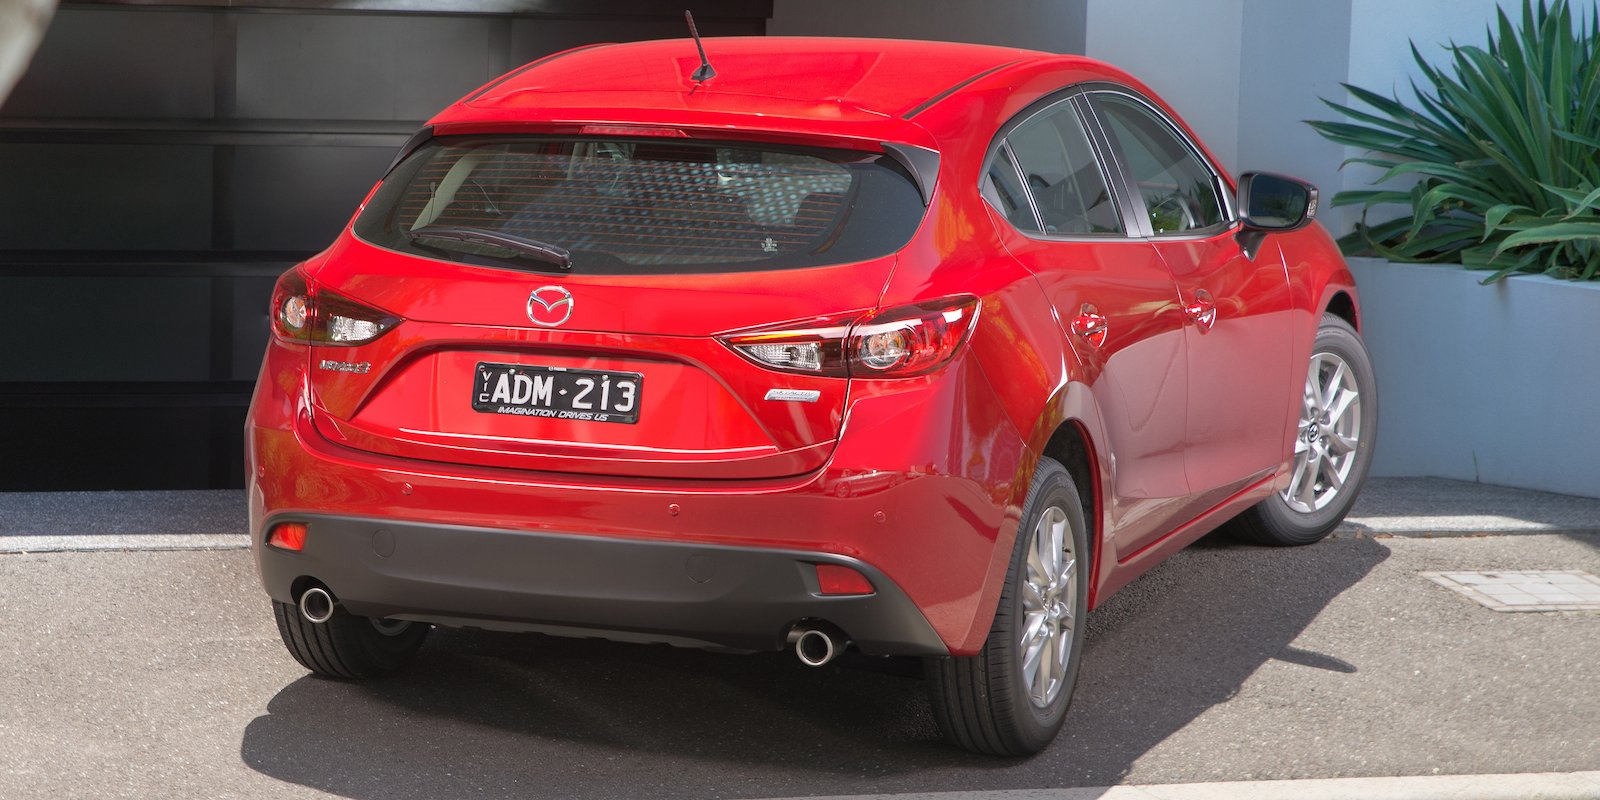 2015 mazda 3 pricing and specifications features up prices down by up to 1150 photos 1 of 6. Black Bedroom Furniture Sets. Home Design Ideas